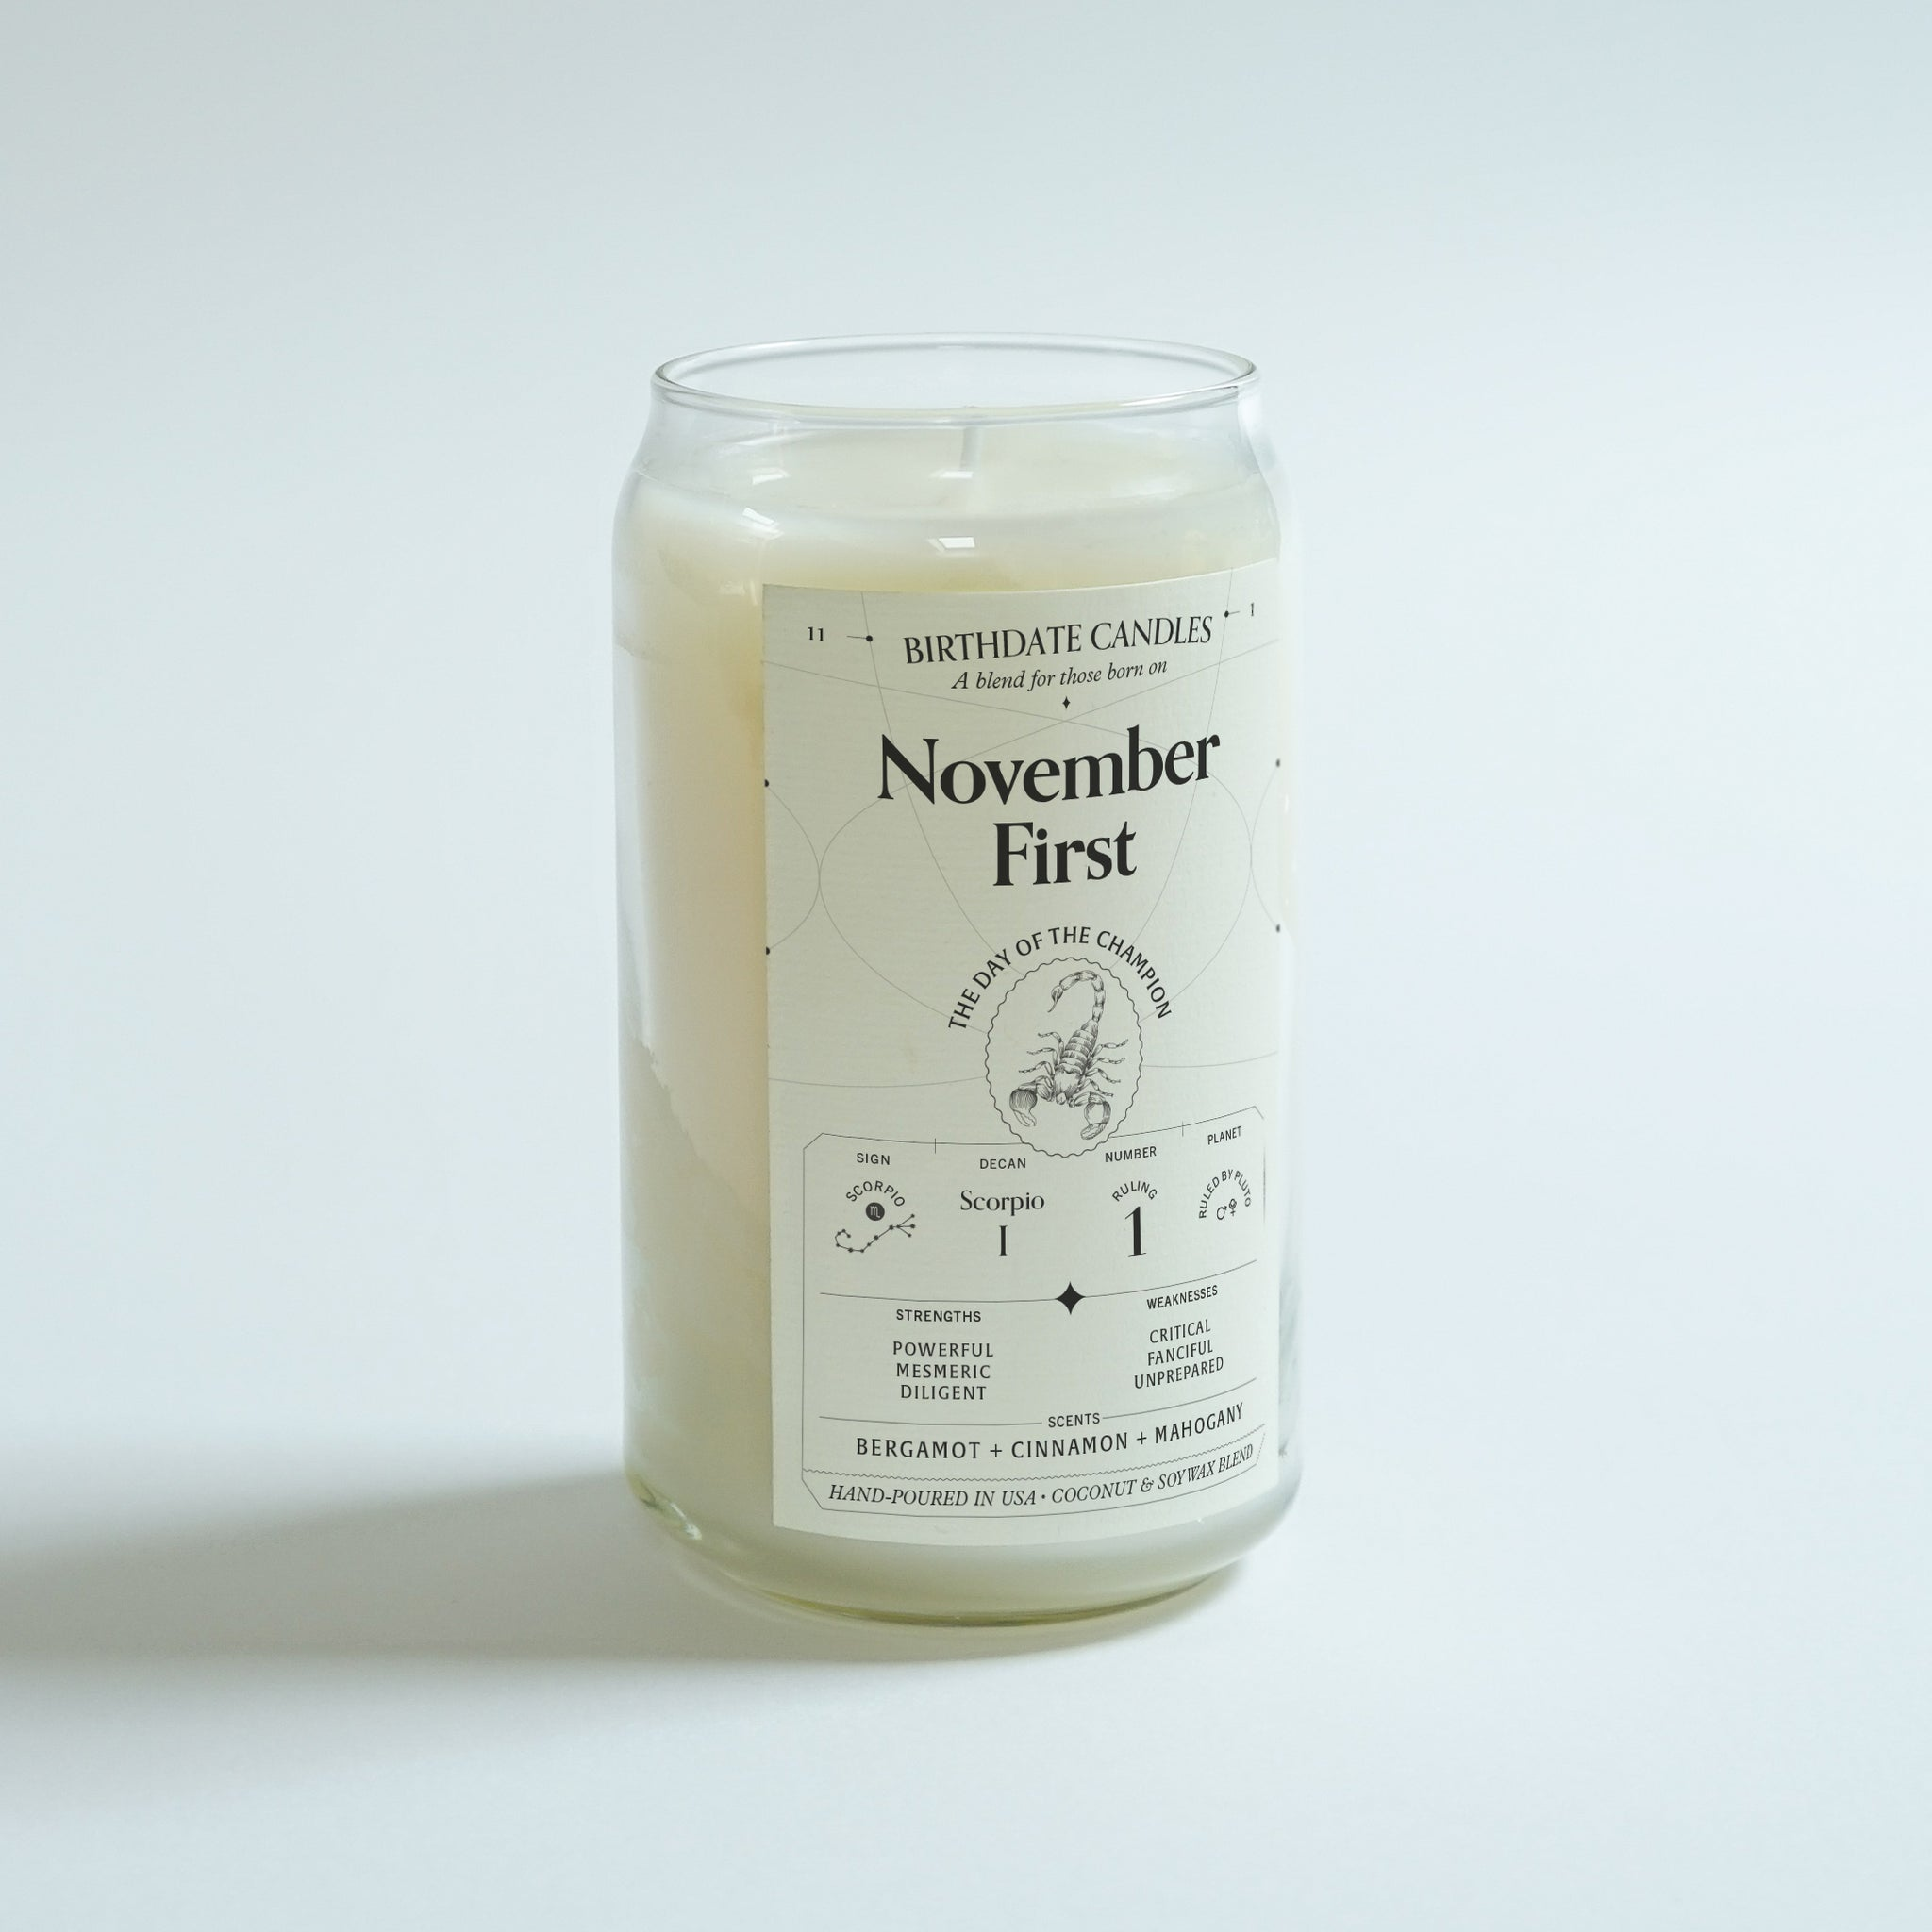 The November First Birthday Candle